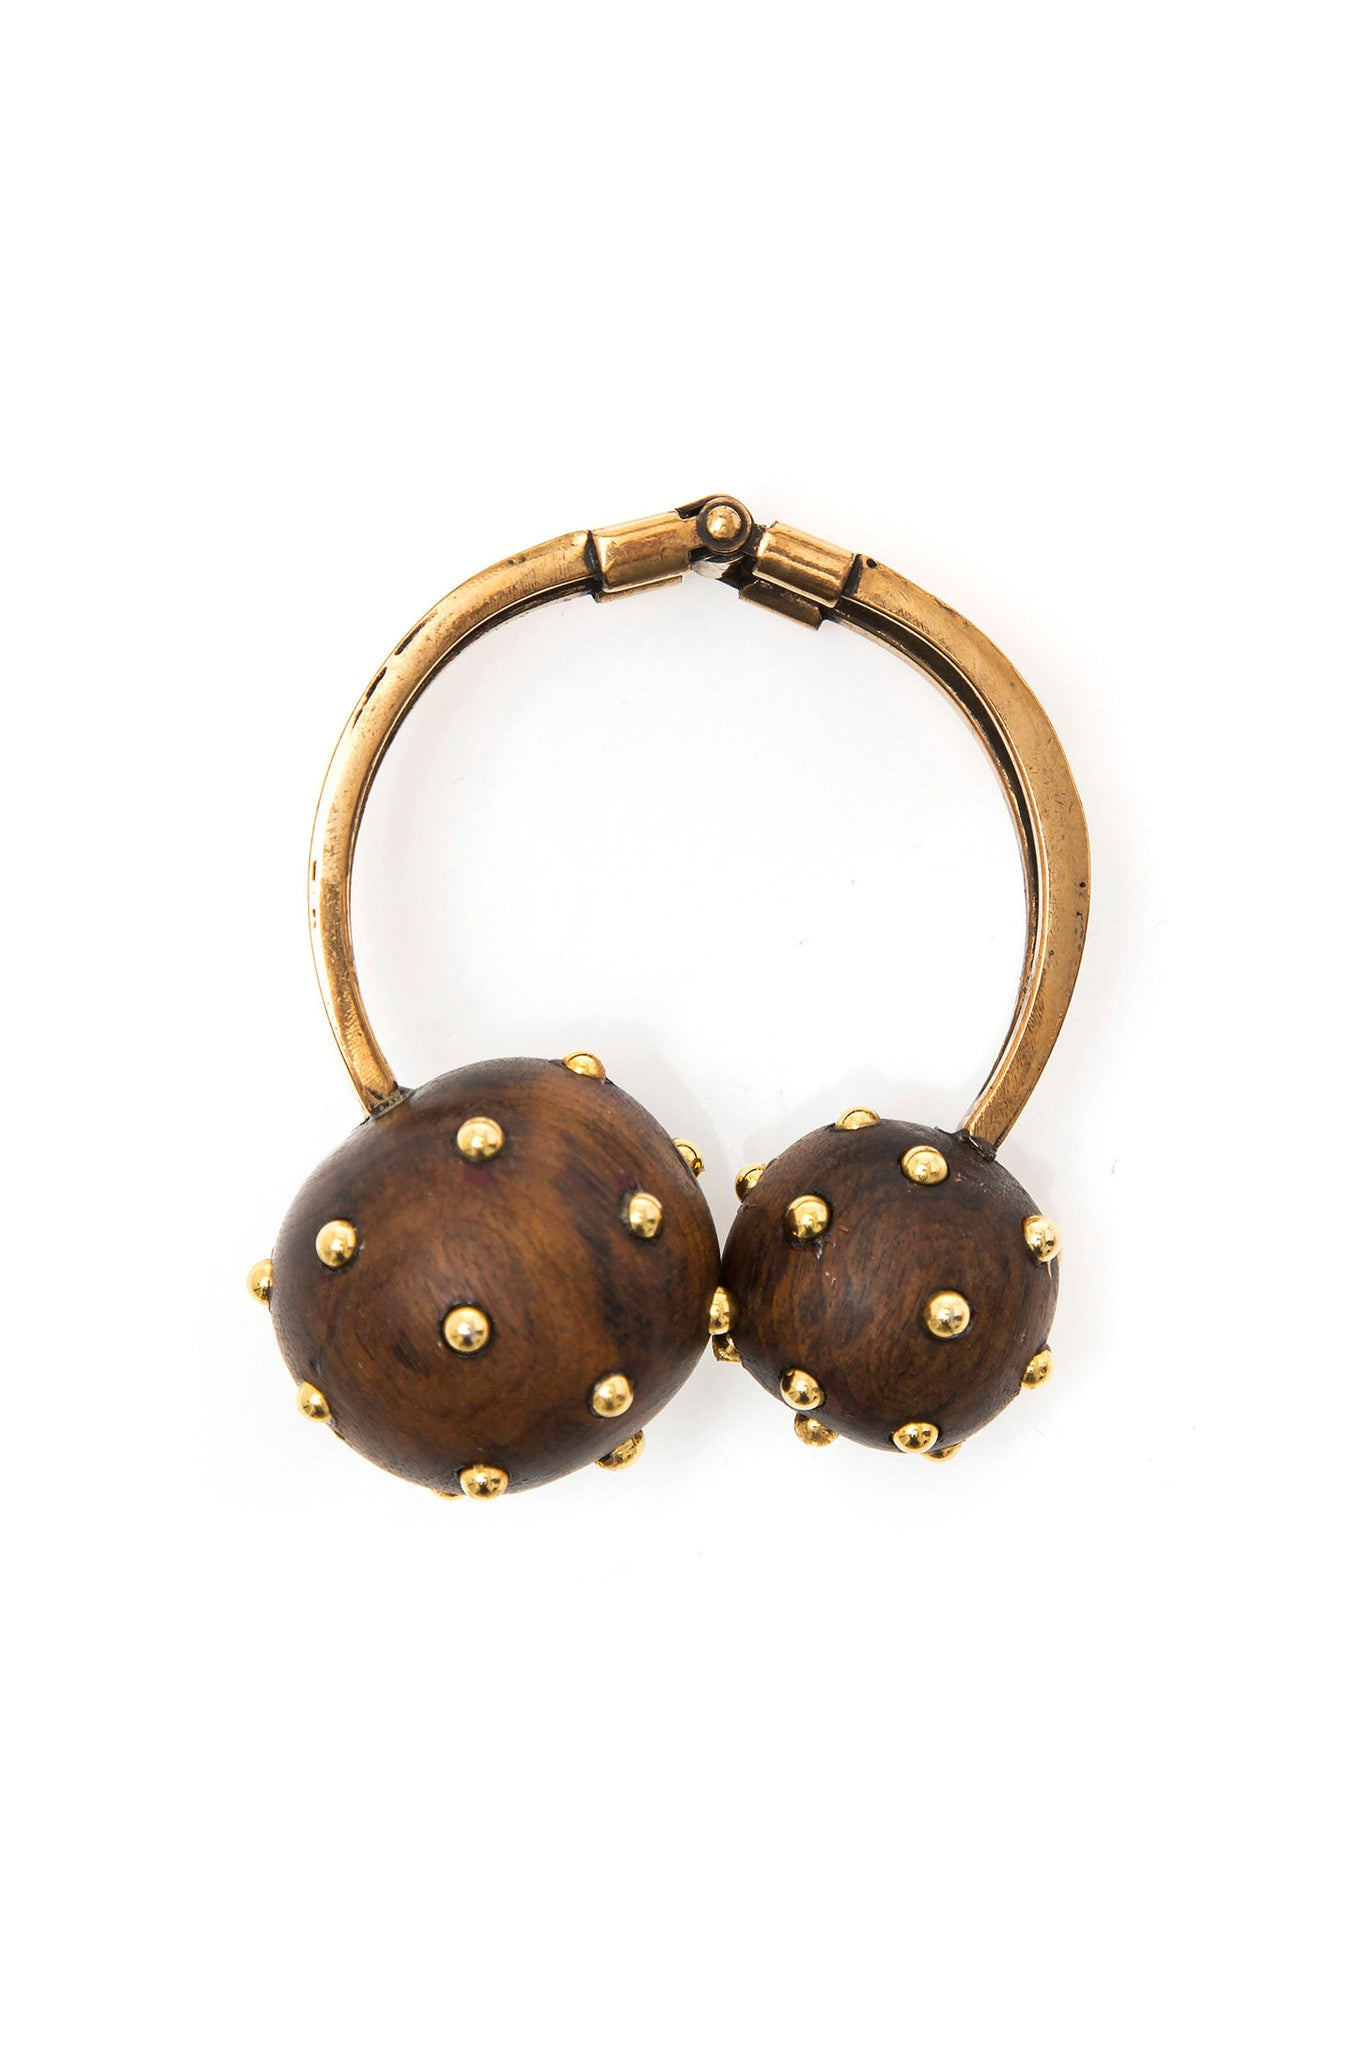 Natural Wood Two Balls Bracelet